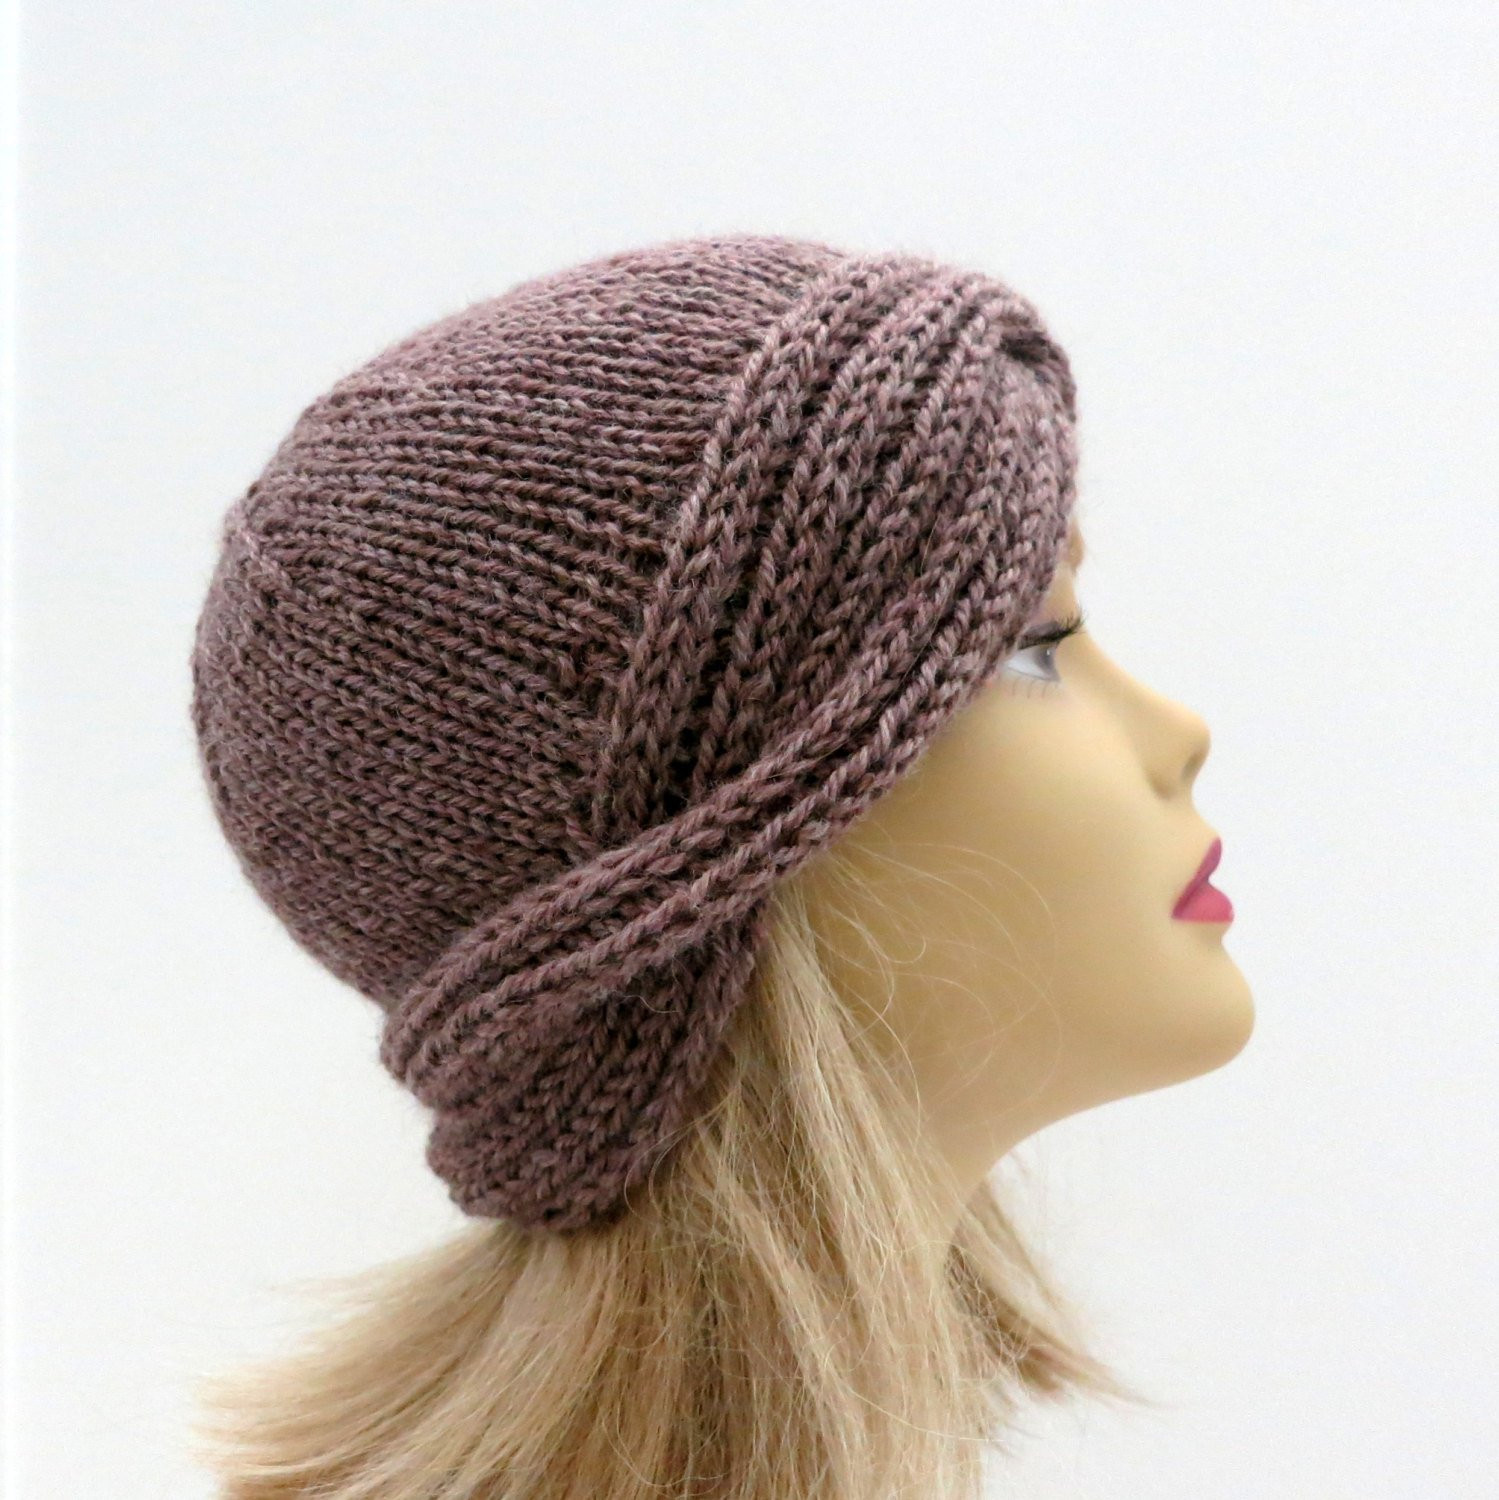 Unique Knitting Pattern Vintage Hat Downton Cloche Pdf 243 Knitting Design Of Incredible 42 Images Knitting Design